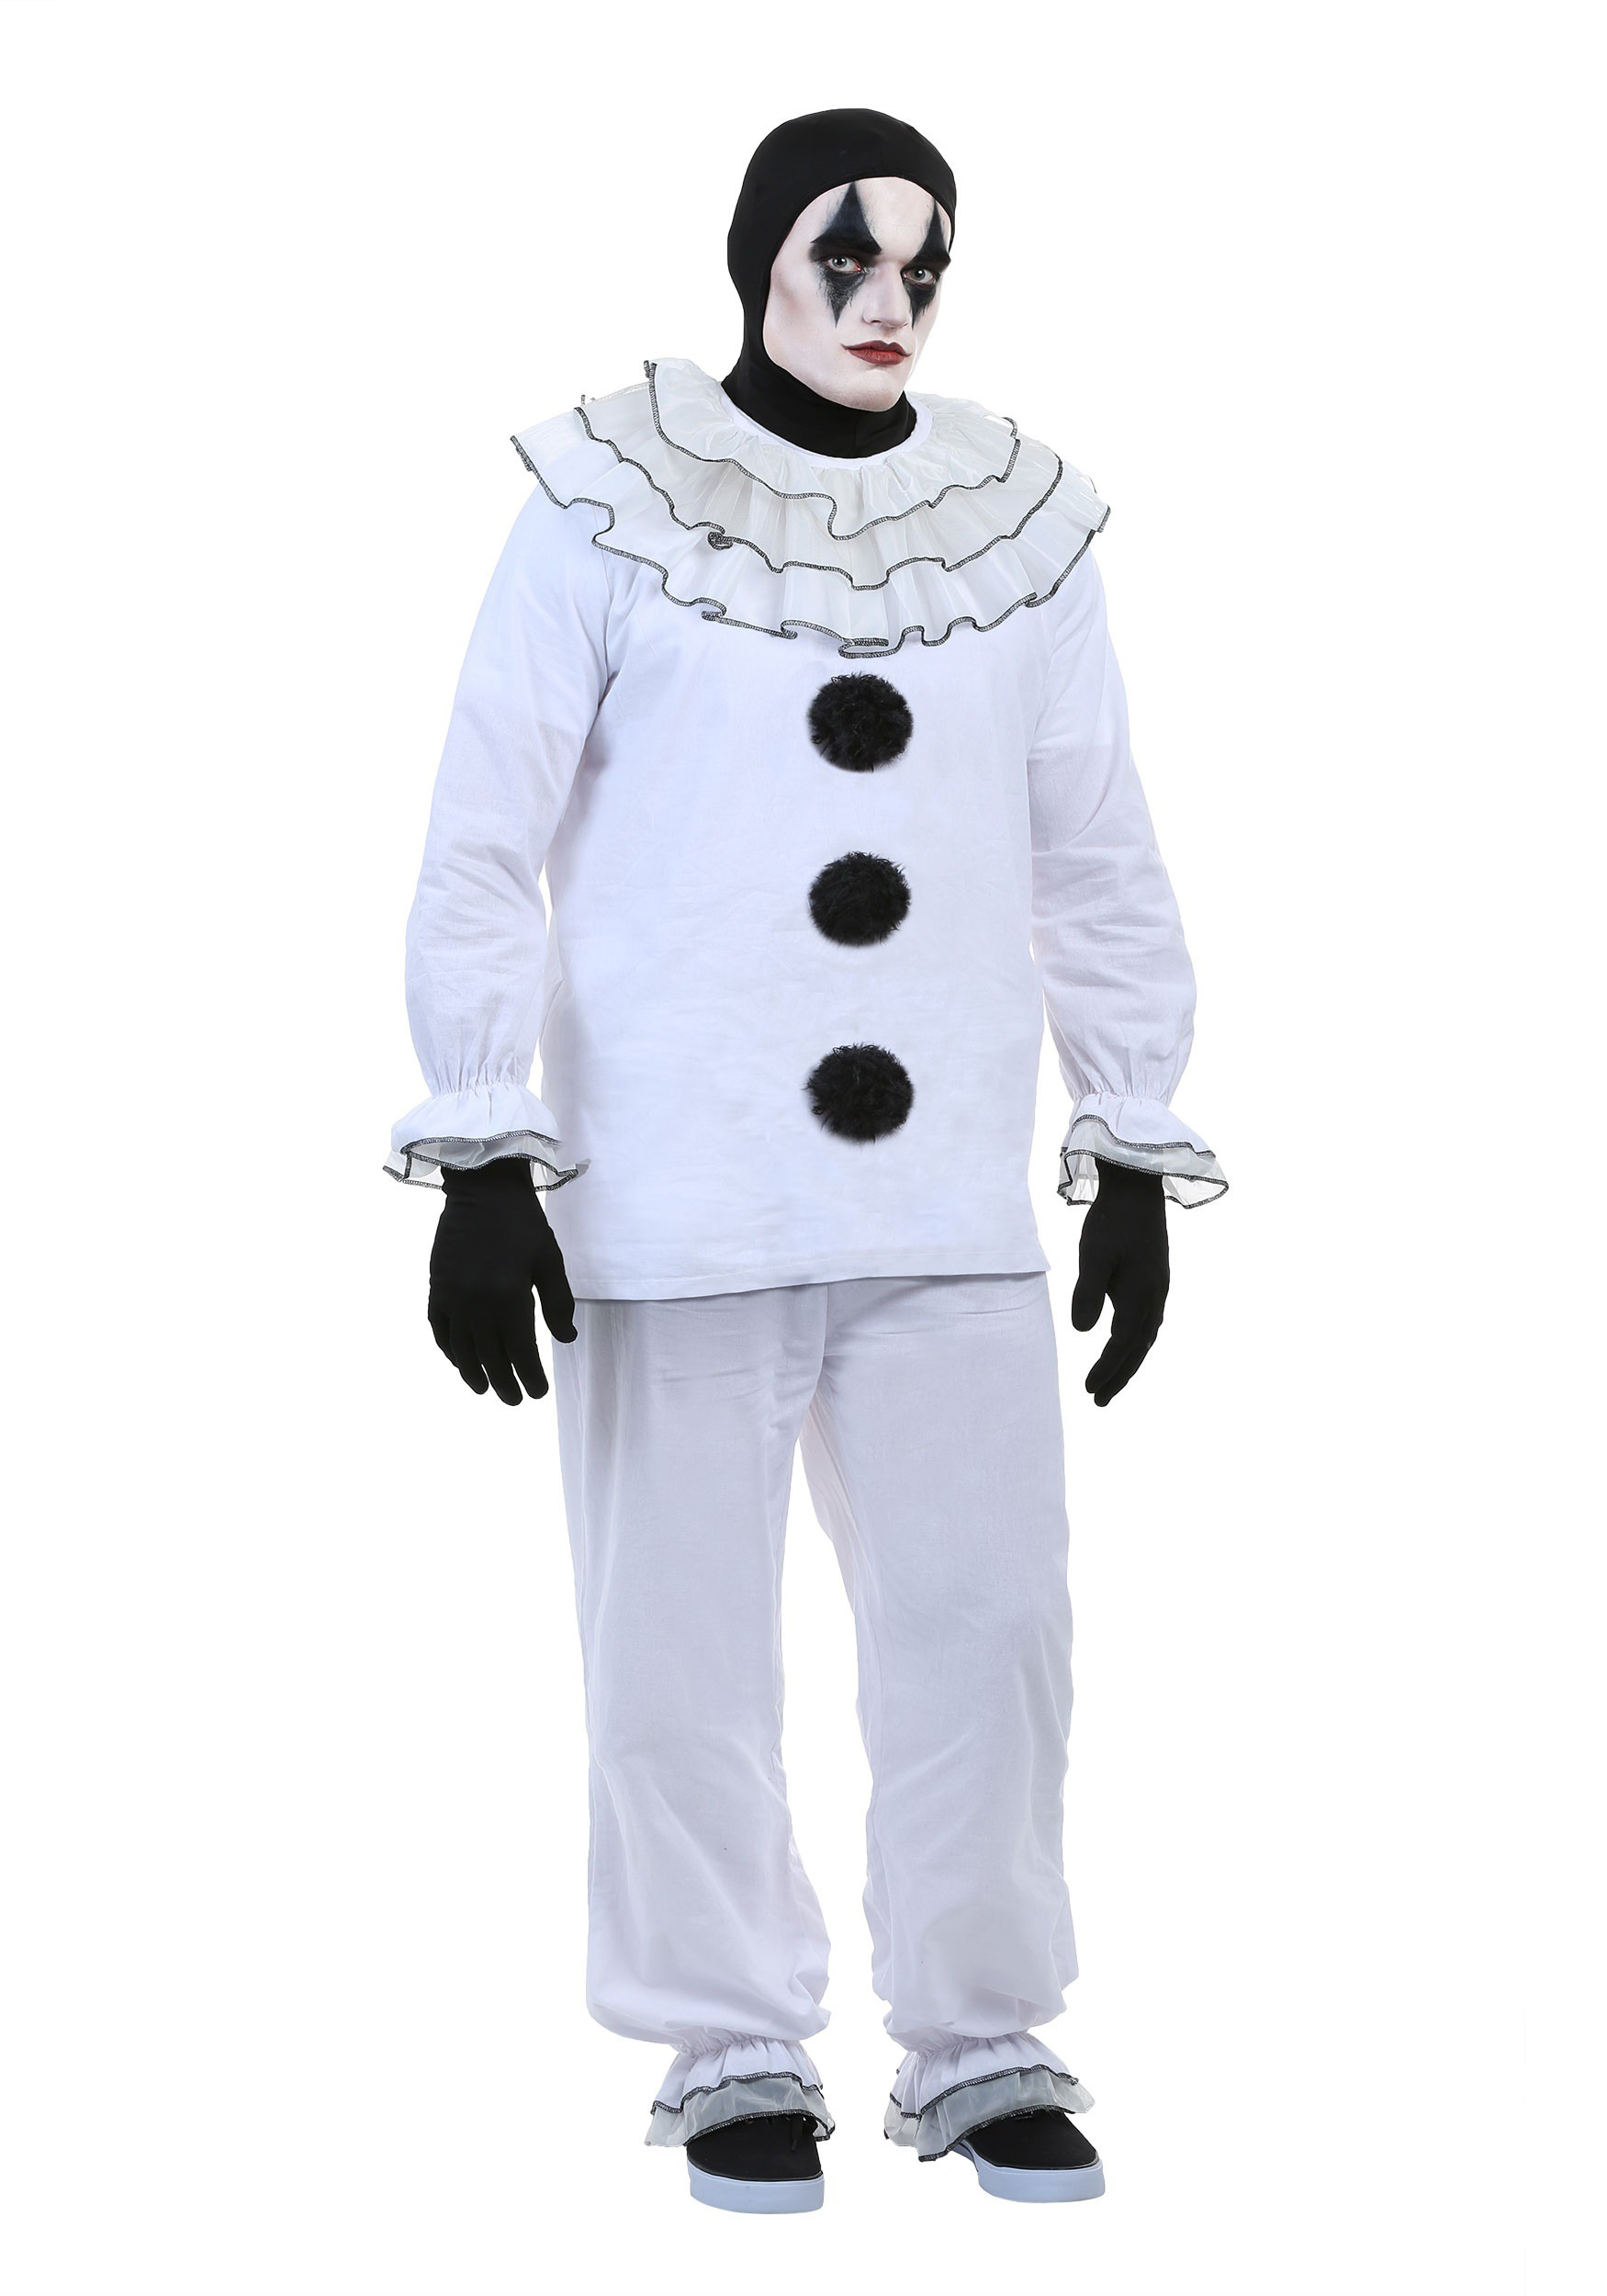 Vintage Pierrot Clown Costume for Men